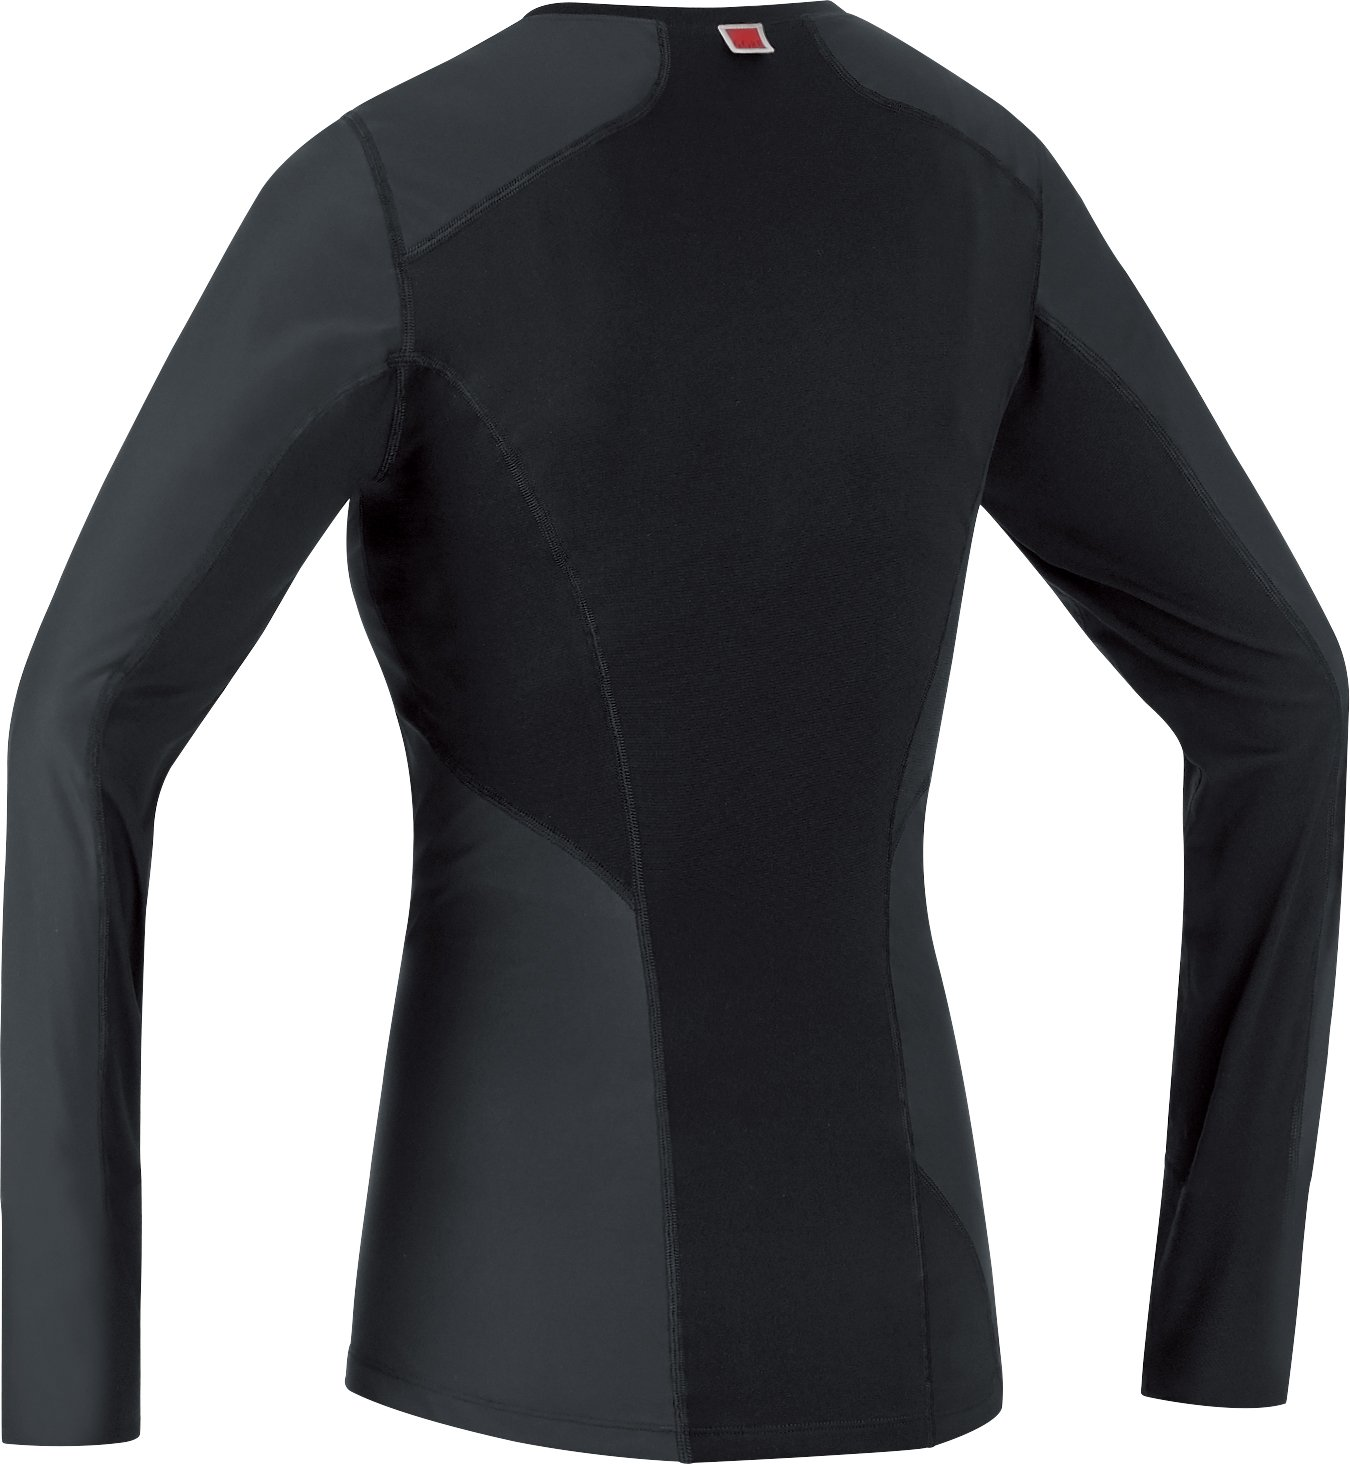 GORE BIKE WEAR Women's Base Layer Windstopper Lady Thermo Long Shirt